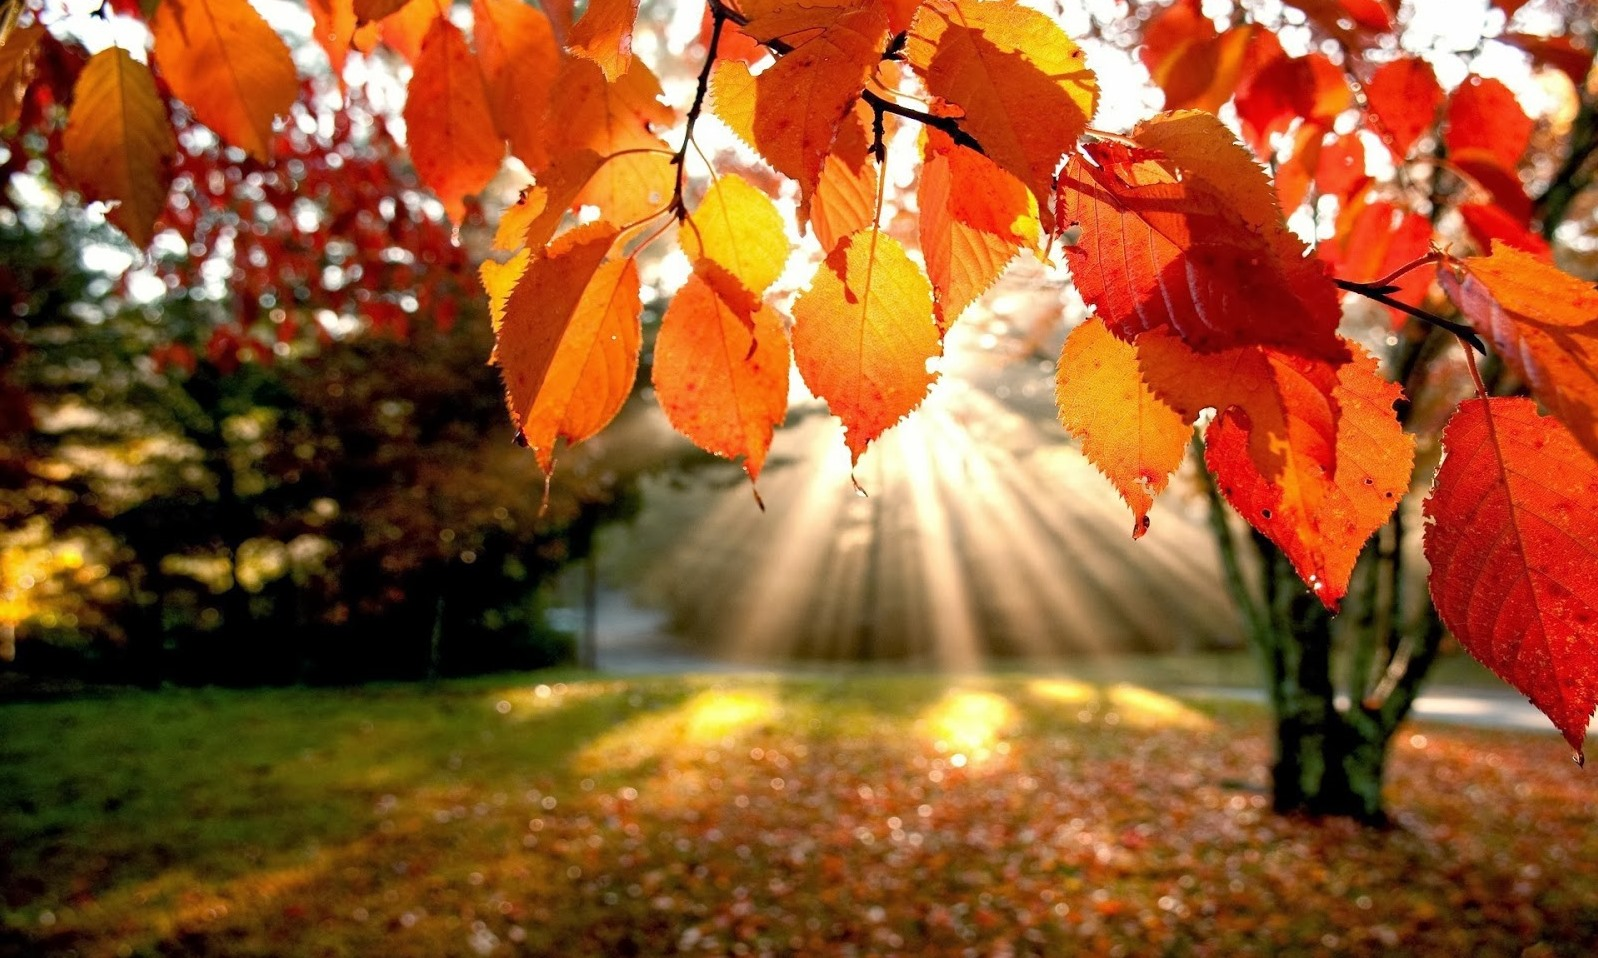 image of fall leaves and sunlight